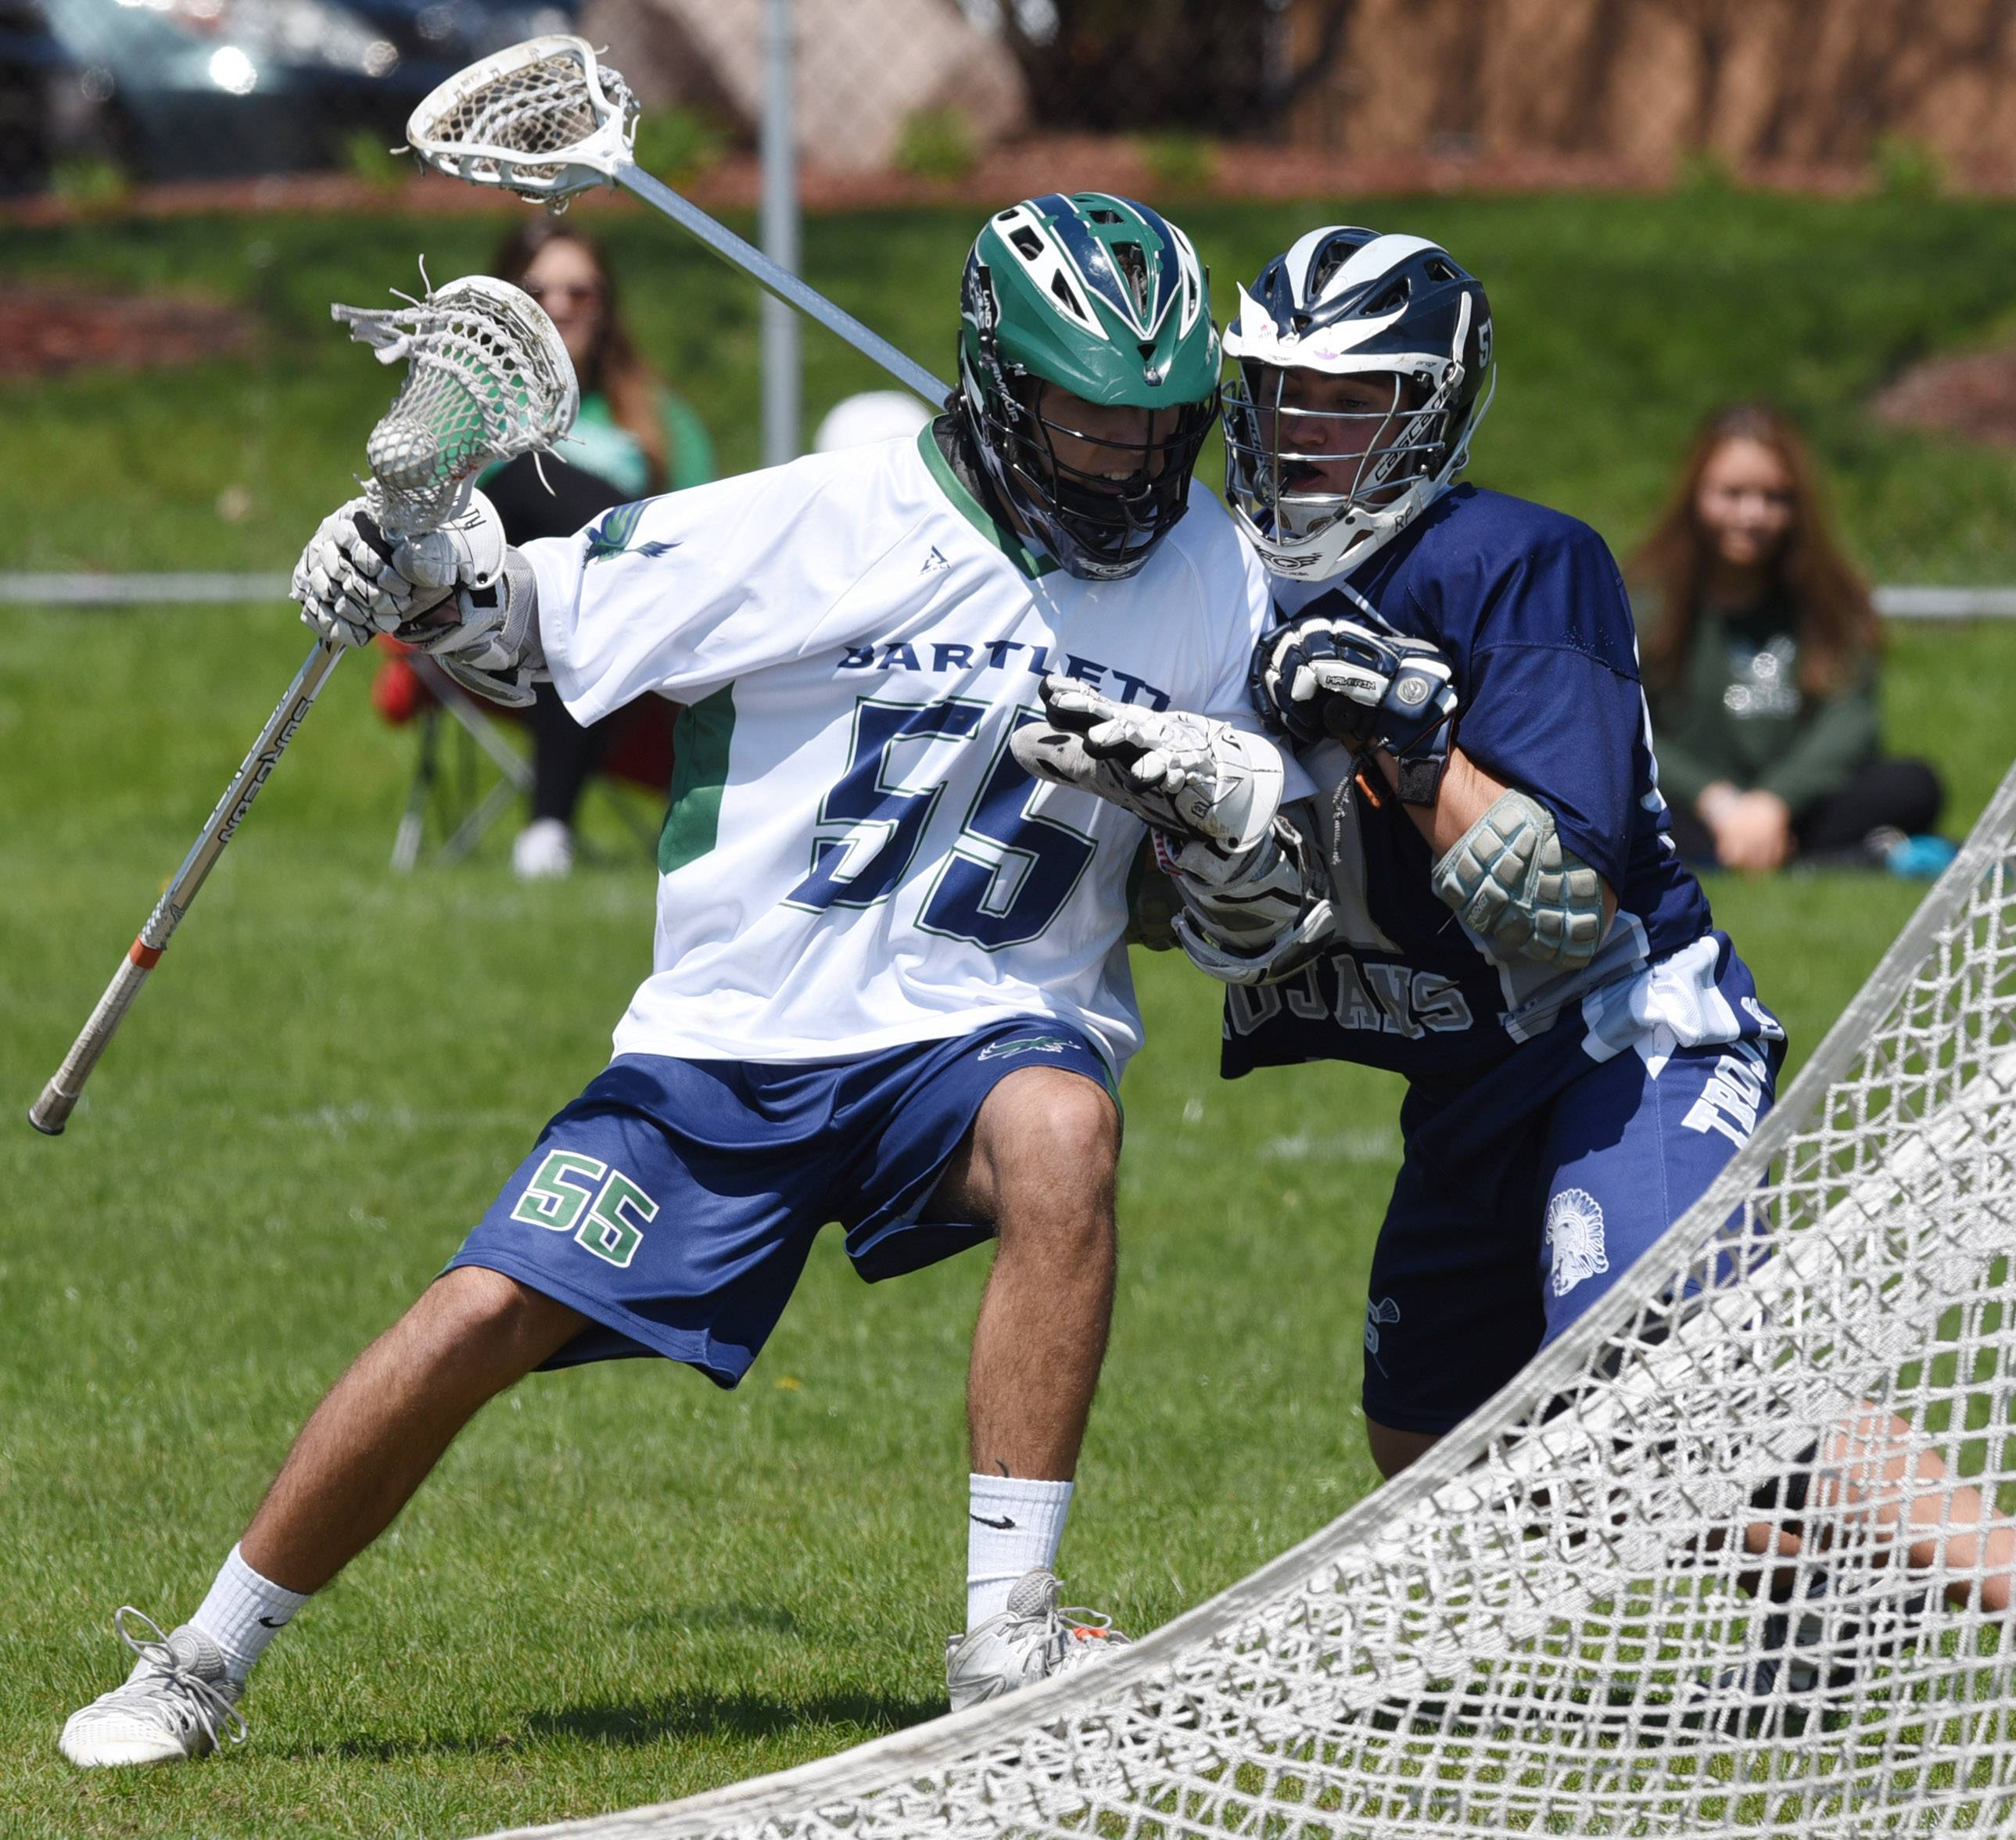 Bartlett High School's Anthony Diperte makes a move toward the net during a varsity lacrosse game against Cary-Grove in the spring of 2016. Elgin Area School District U-46 officials are considering starting district-funded cooperative lacrosse teams for high school girls and boys starting next spring.